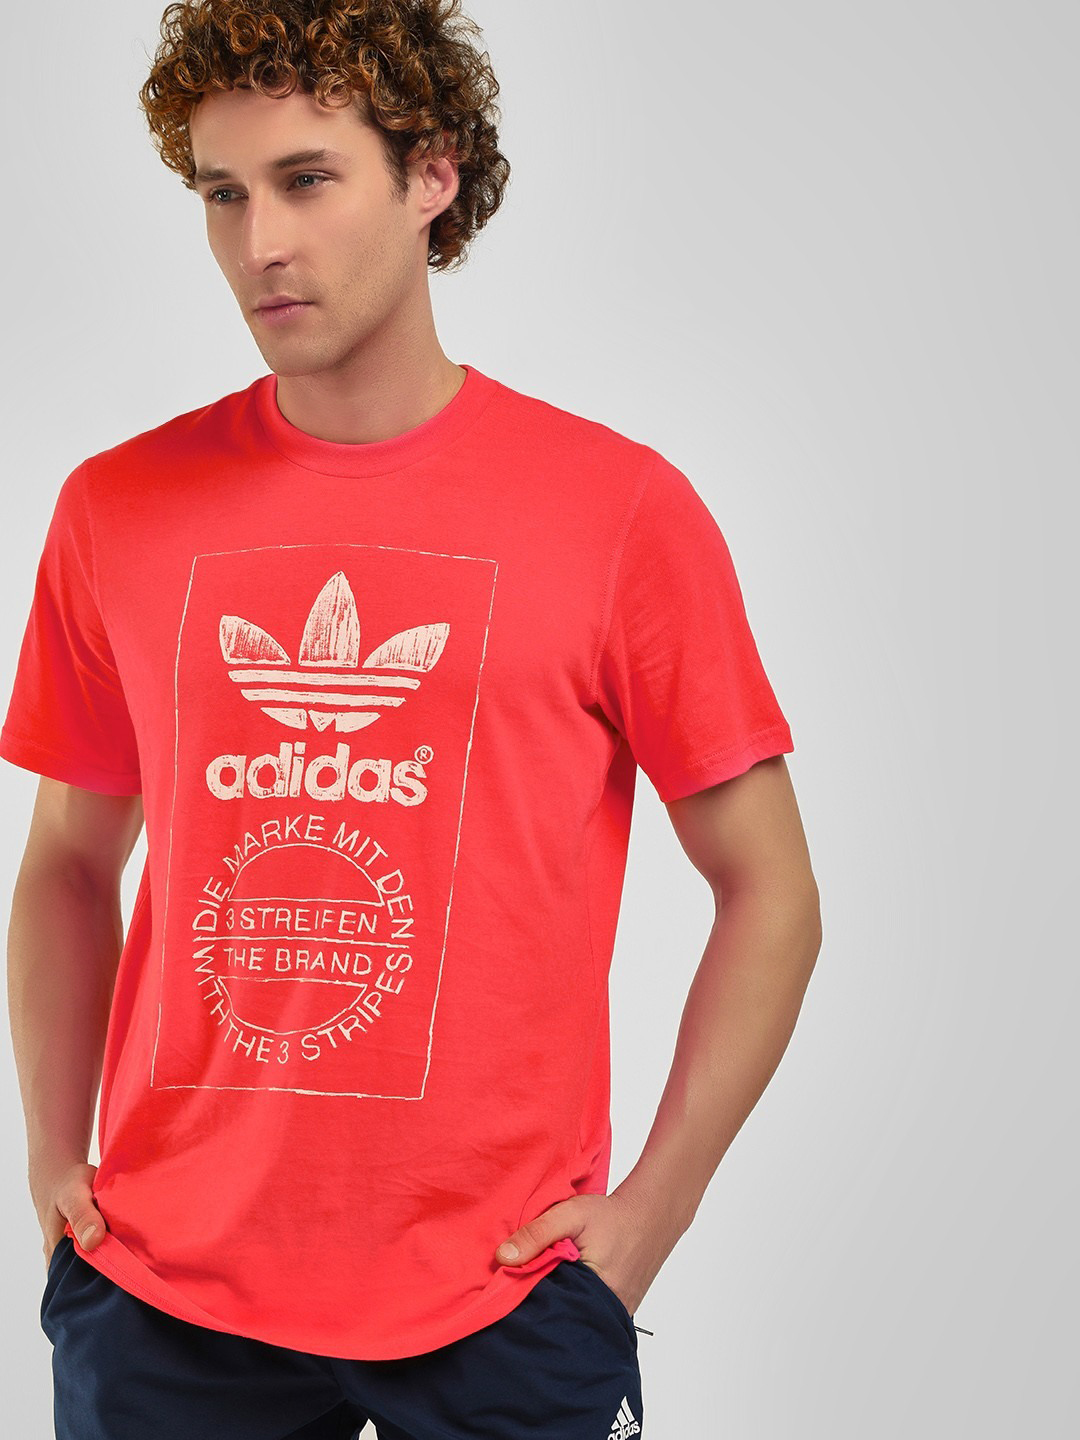 Adidas Originals Red Hand Drawn T-Shirt 1